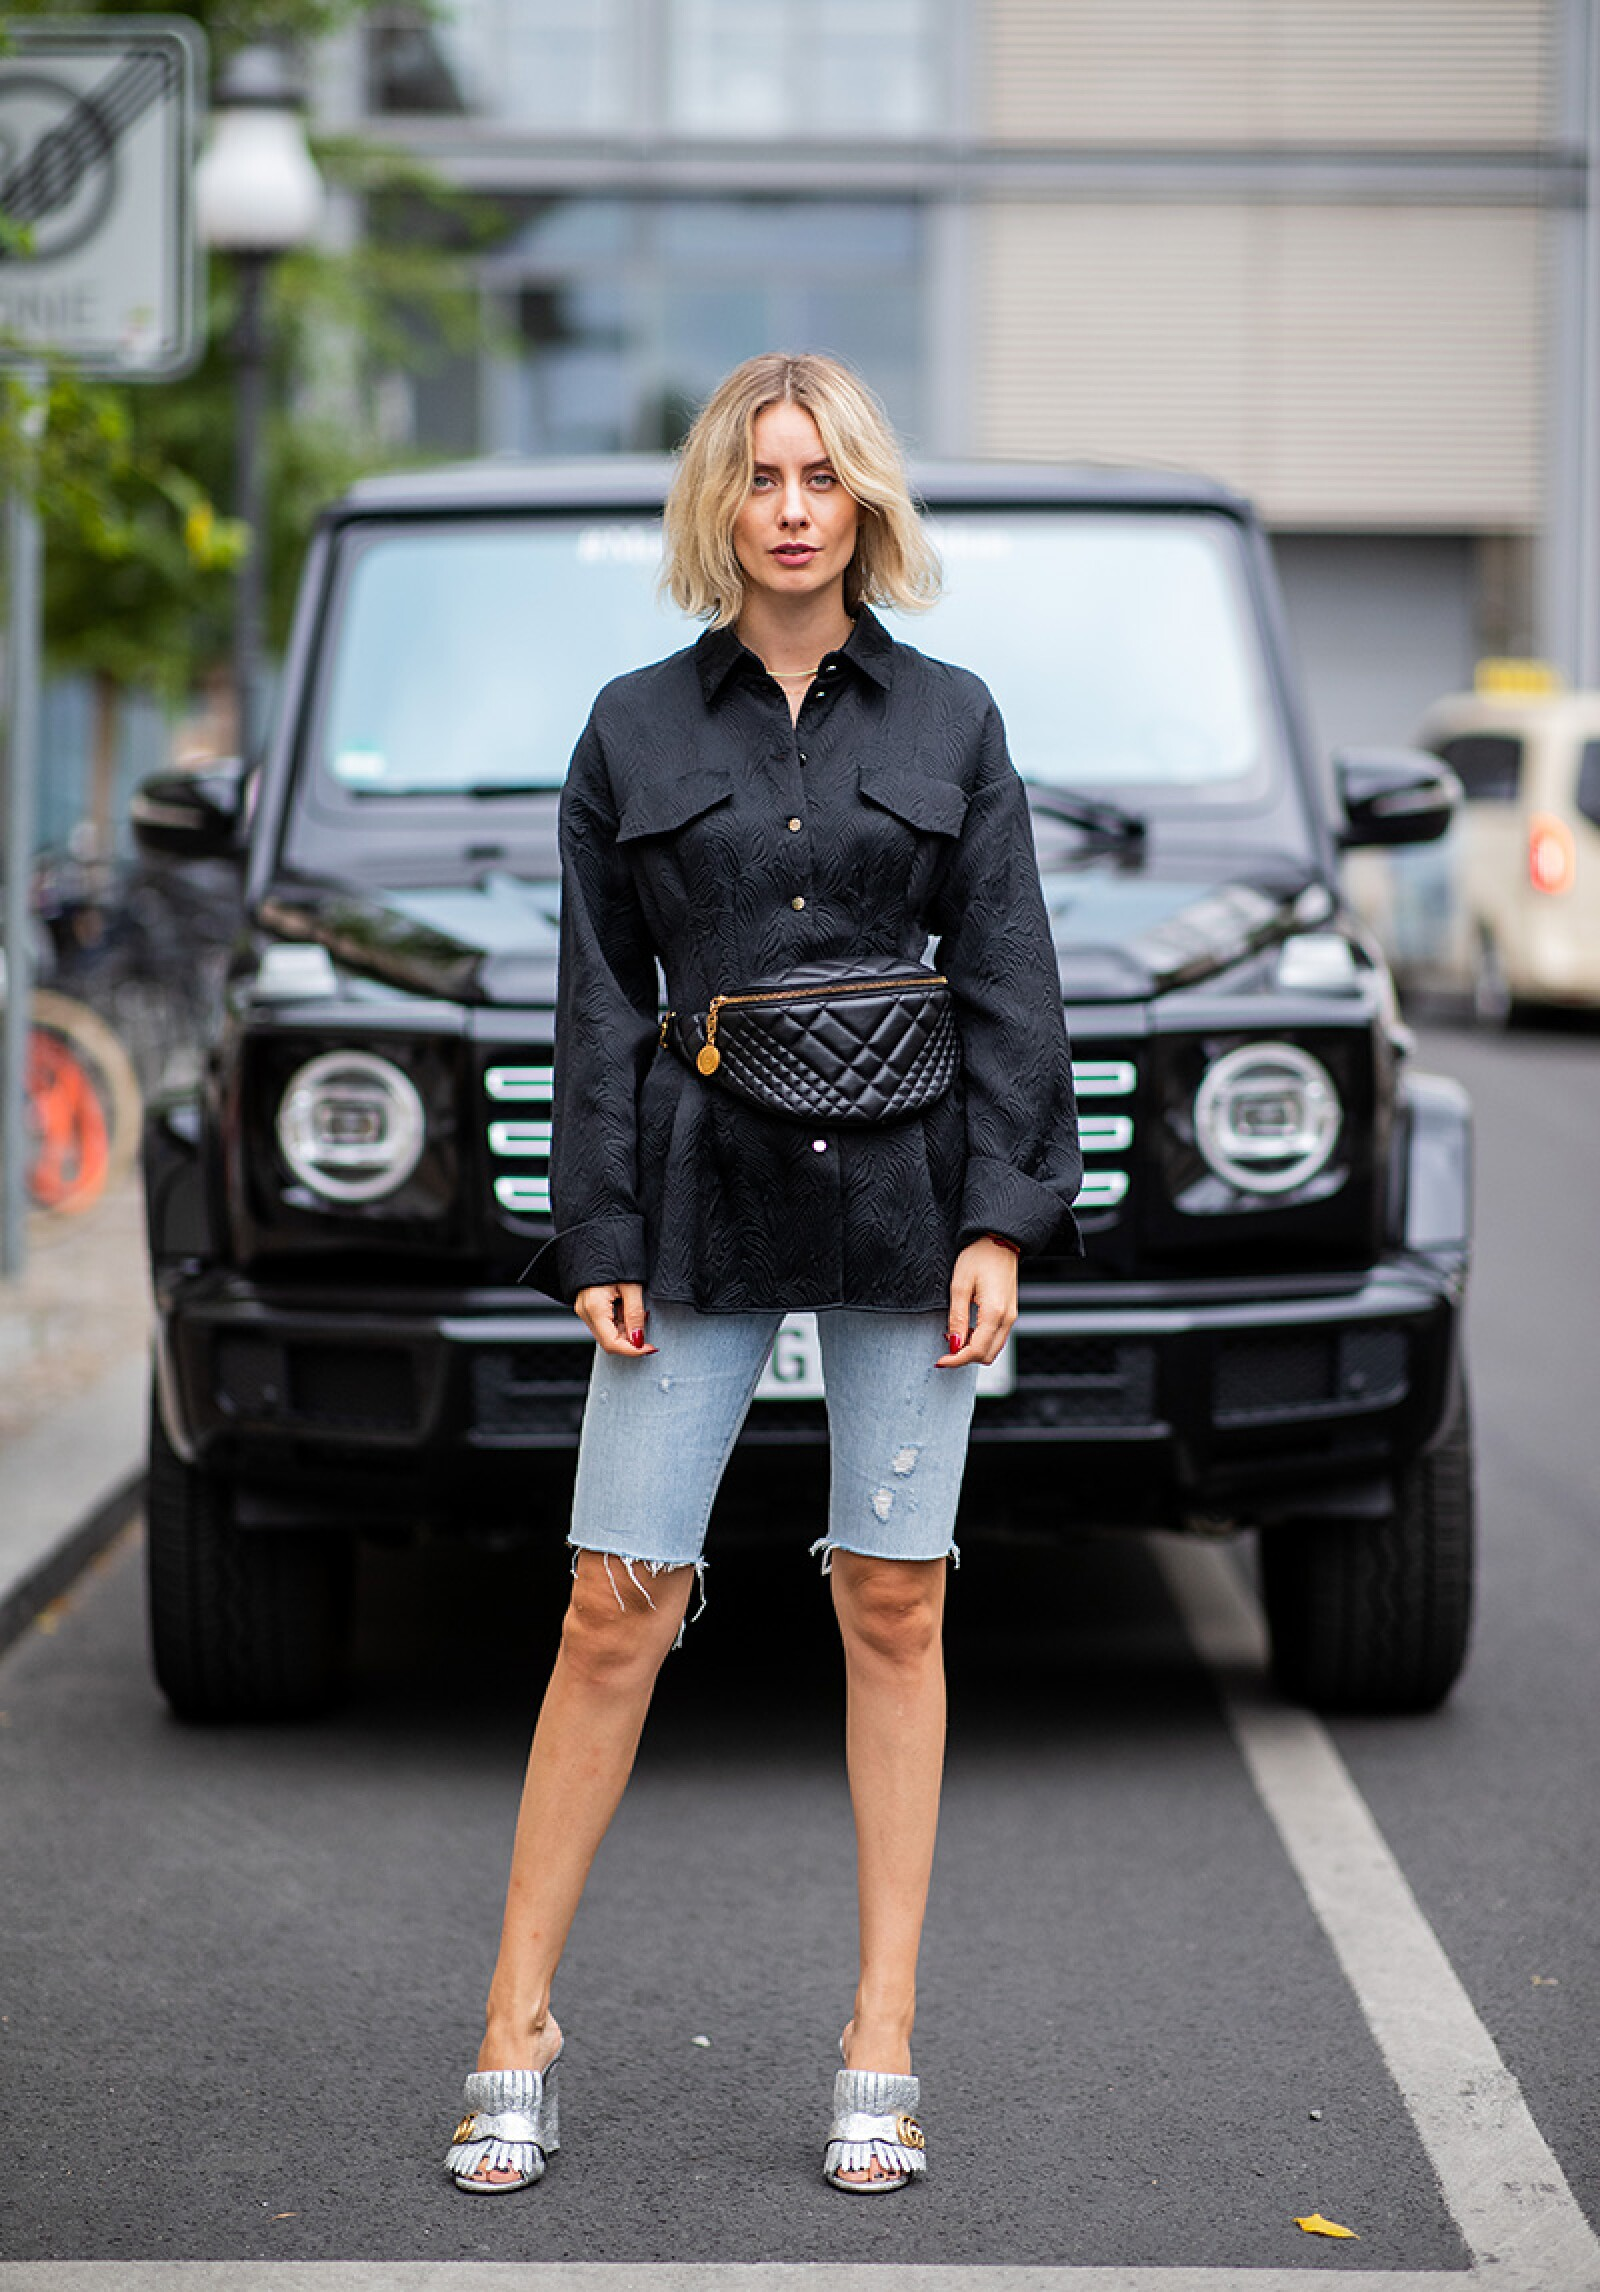 Street Style - Berlin Fashion Week Spring/Summer 2019 - July 6, 2018